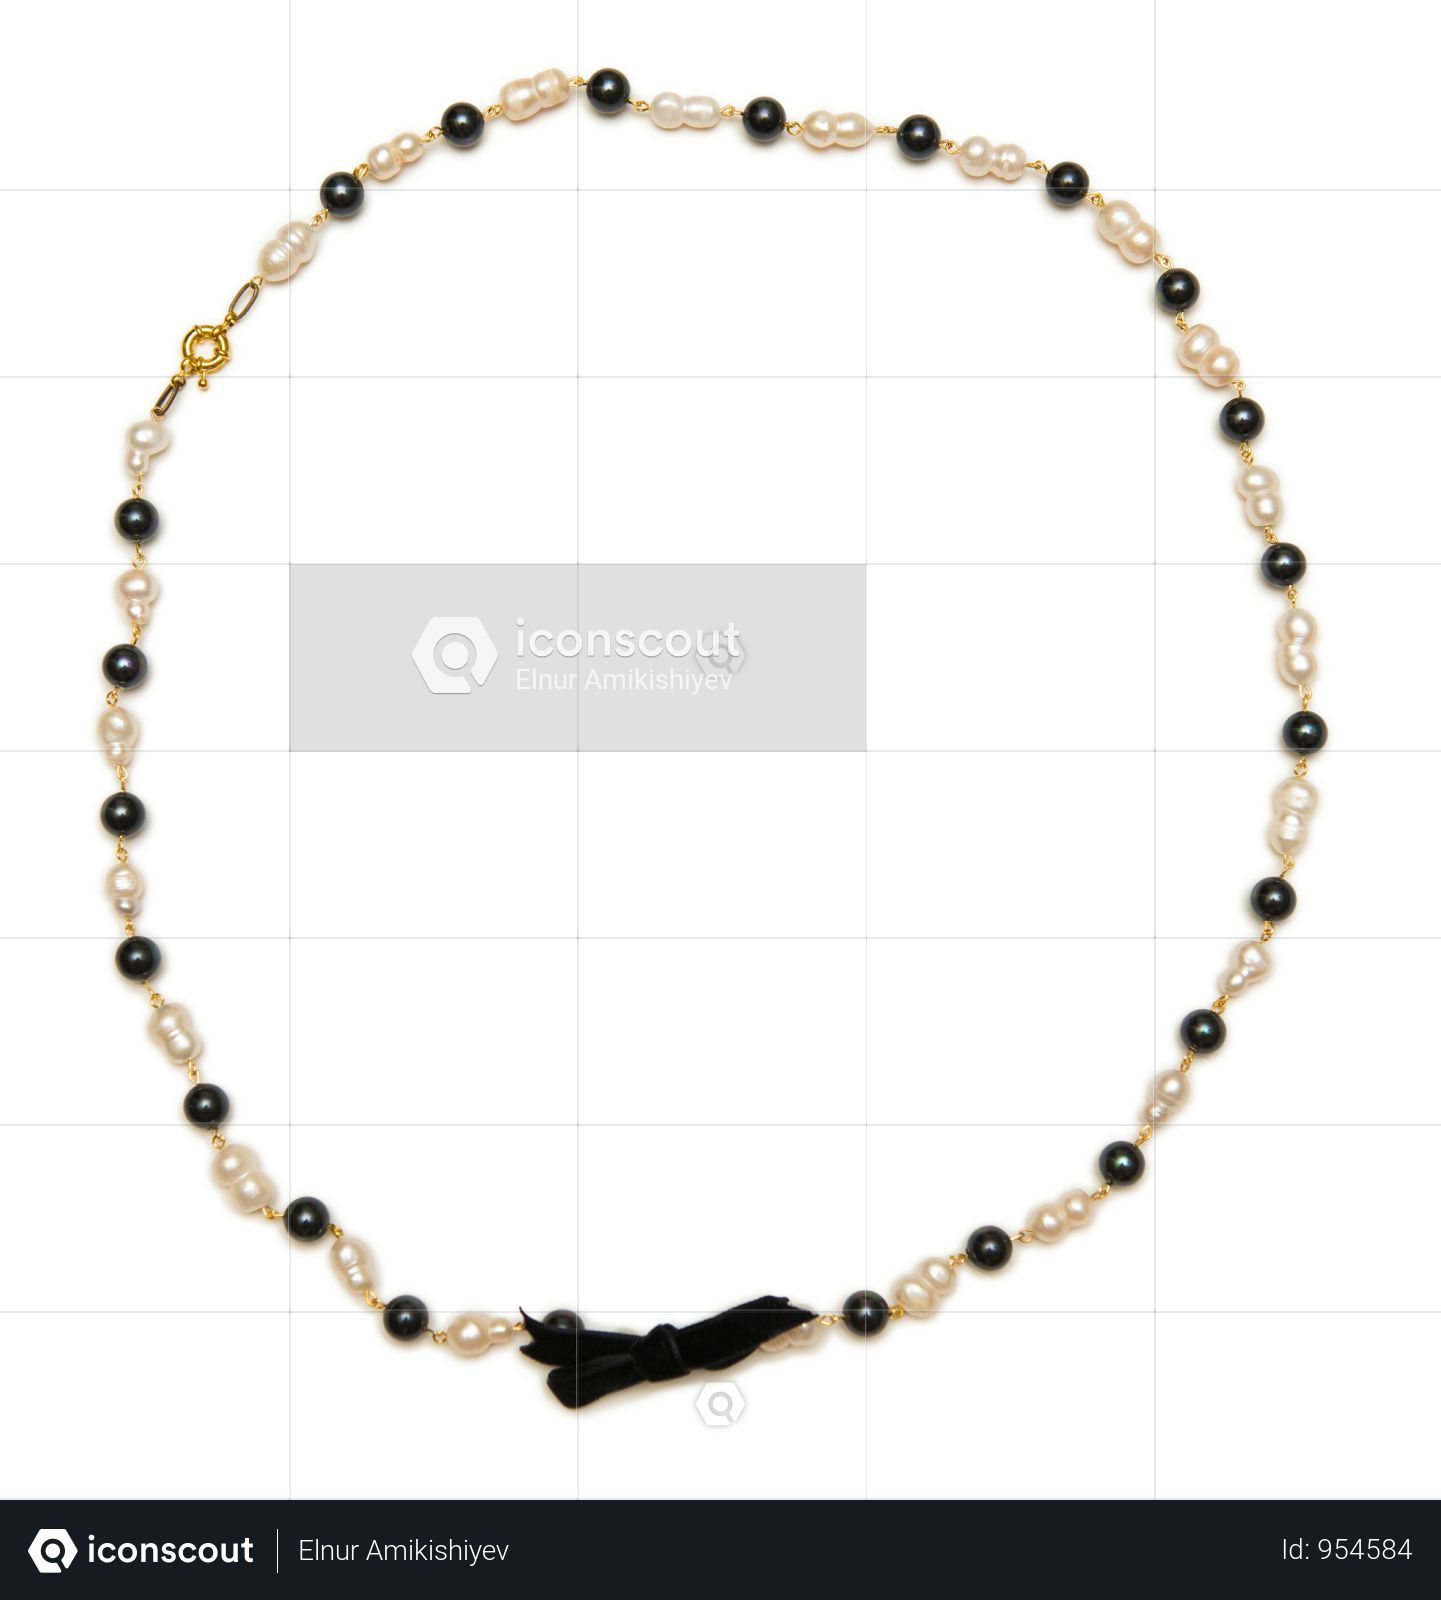 Premium Nice Necklace Isolated On White Background Photo Download In Png Jpg Format Cool Necklaces White Background Photo Photo Jewelry